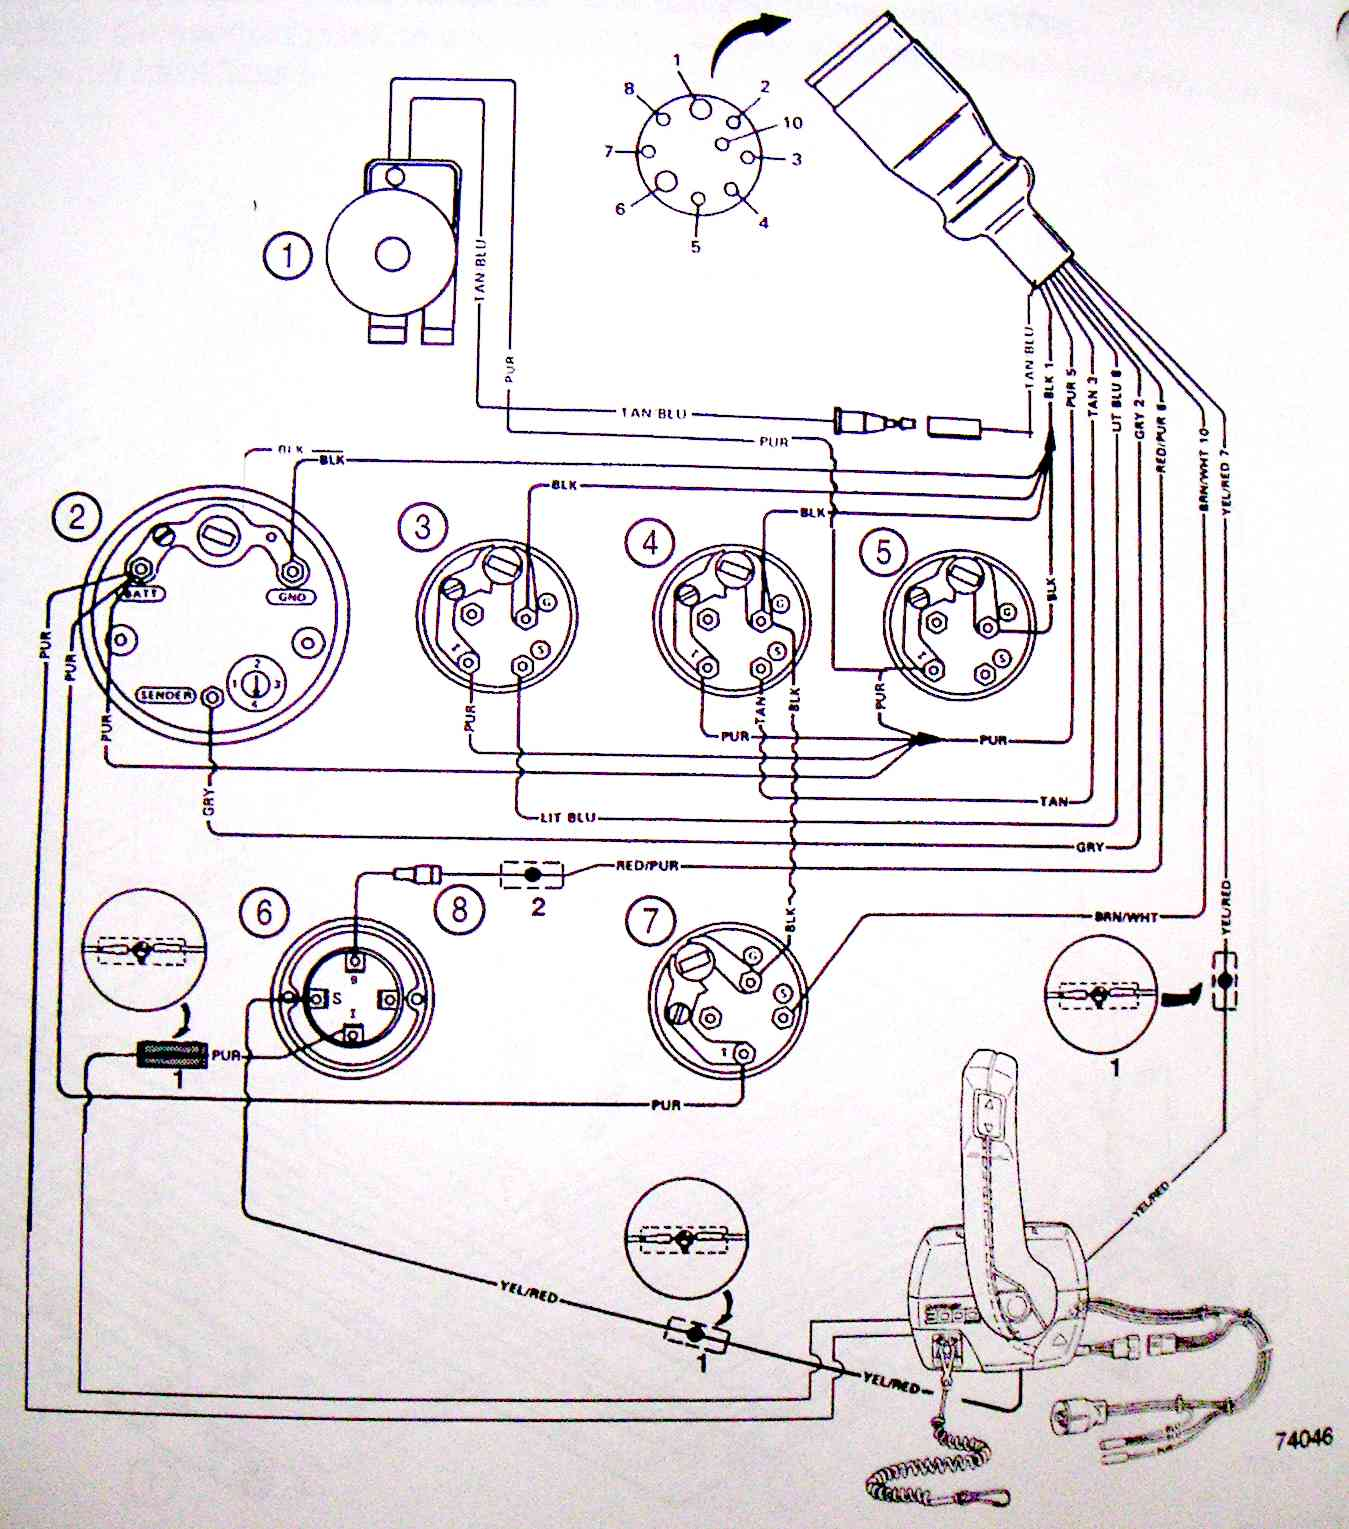 BoatHarness74046 wiring diagram for mercruiser 140 the wiring diagram mercruiser alpha one wiring diagram at couponss.co